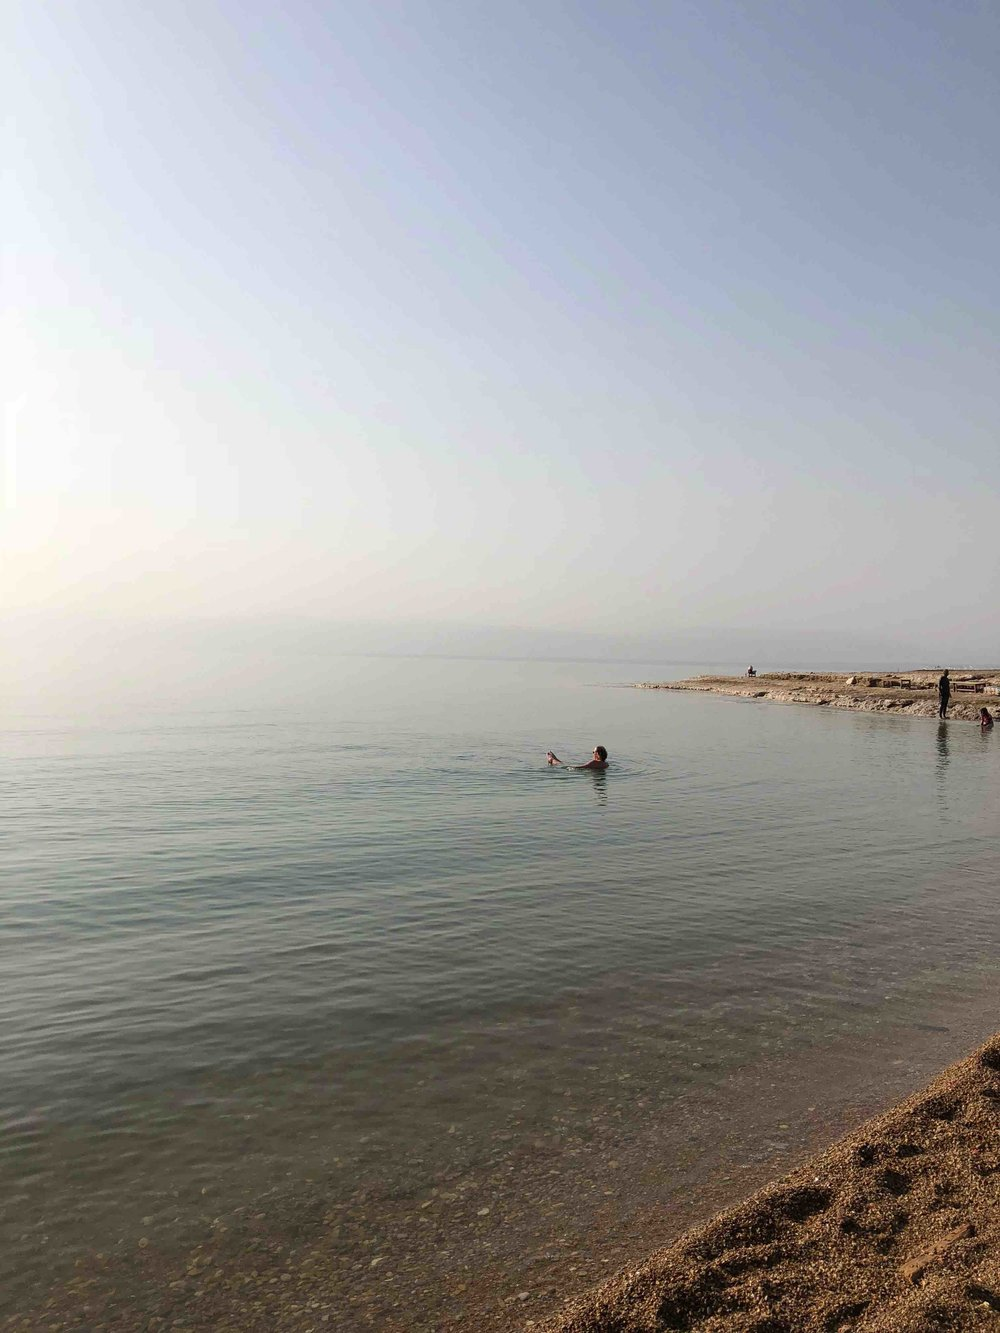 Dead sea 400m below sea level